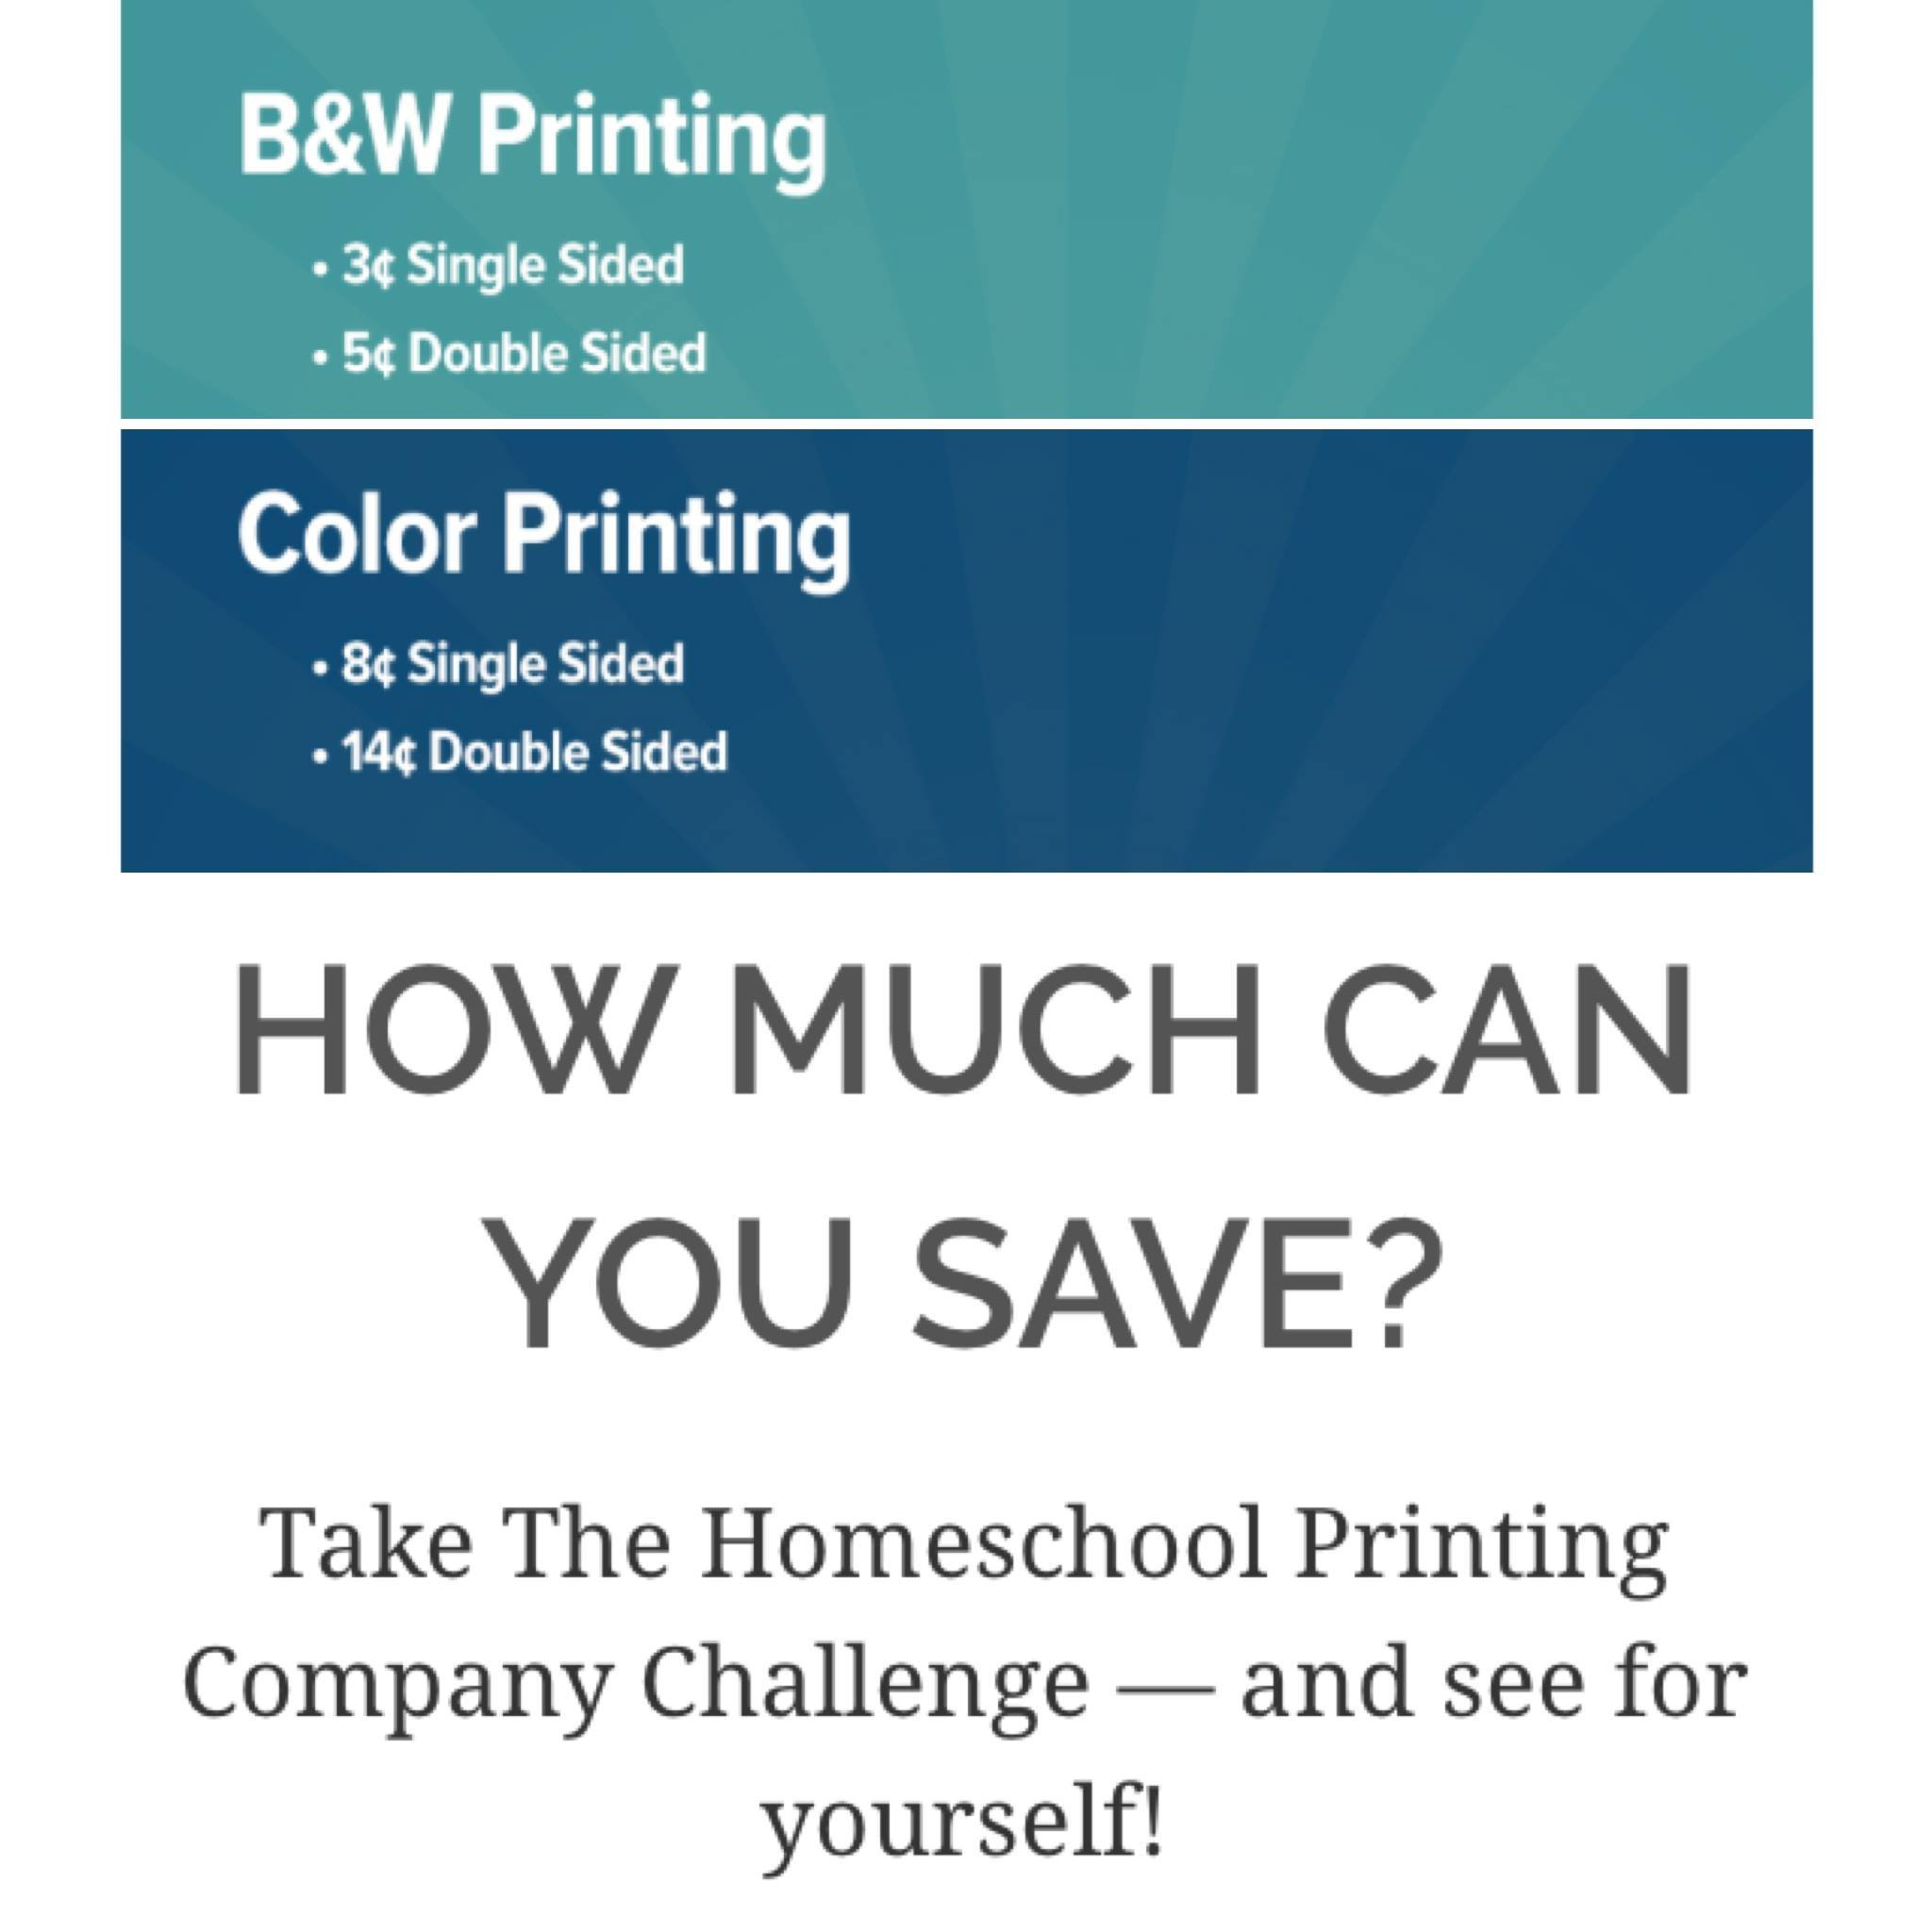 Print Files For Less